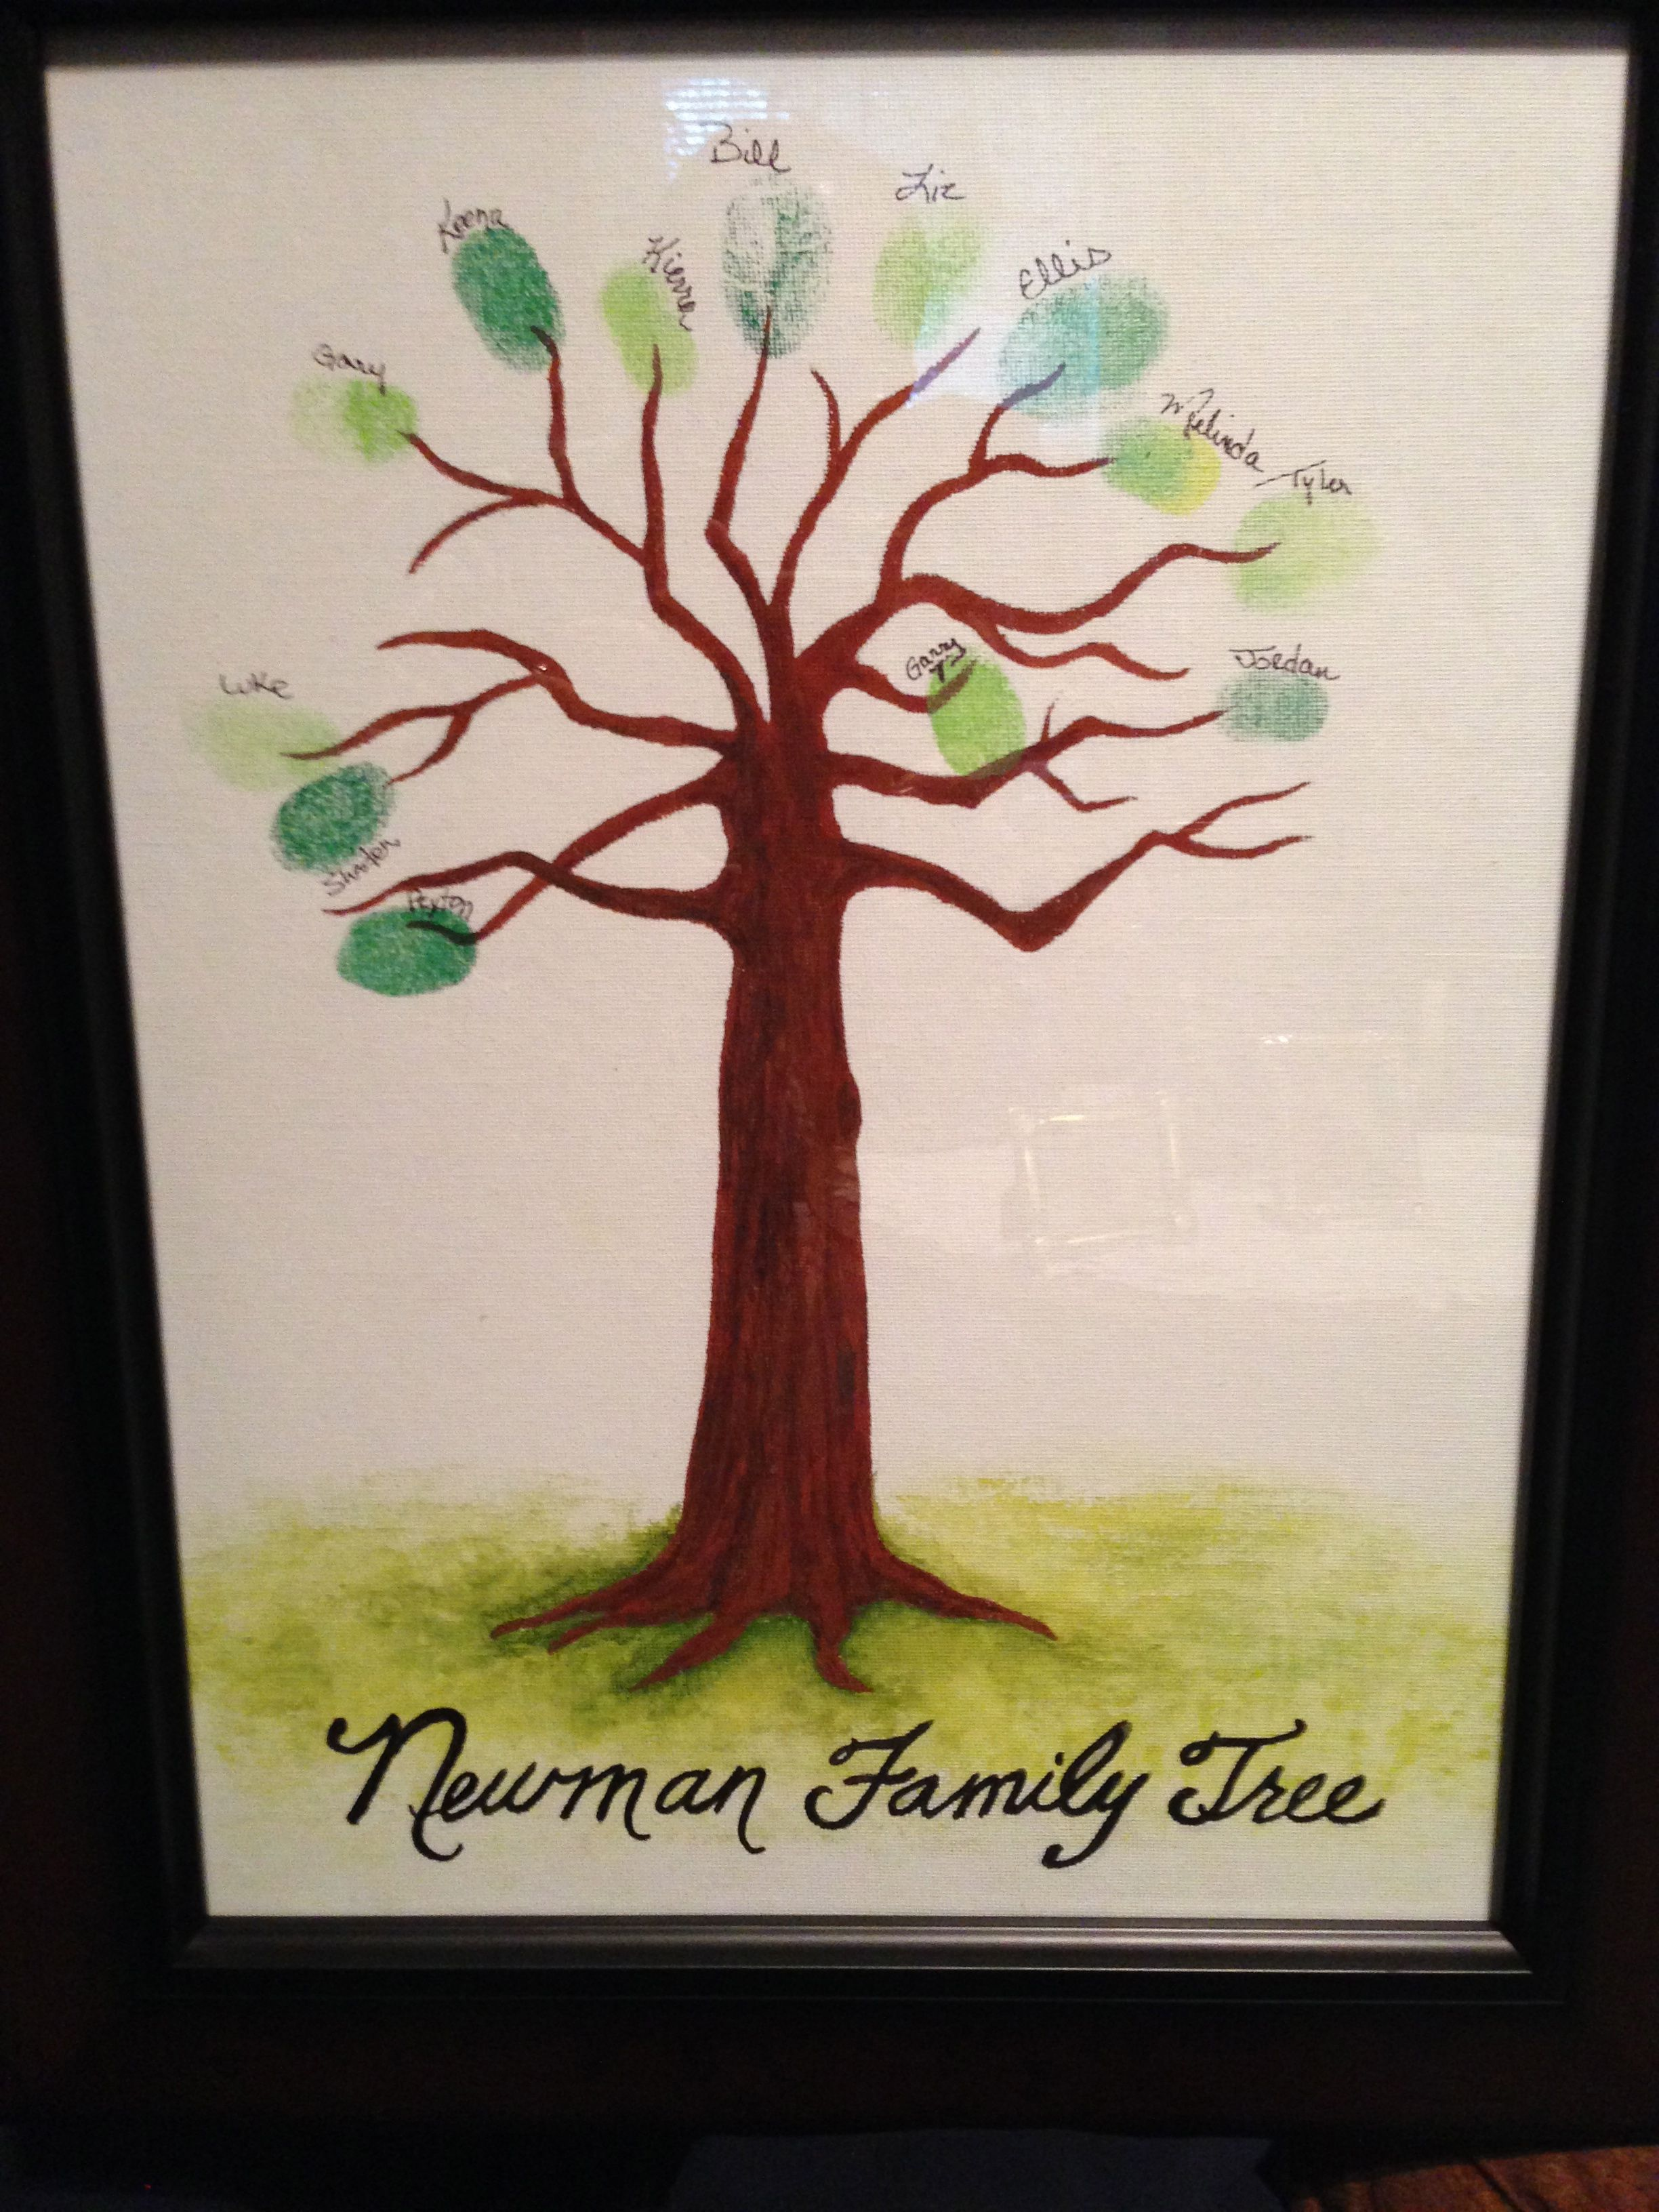 Family tree made out of fingerprints of family members.